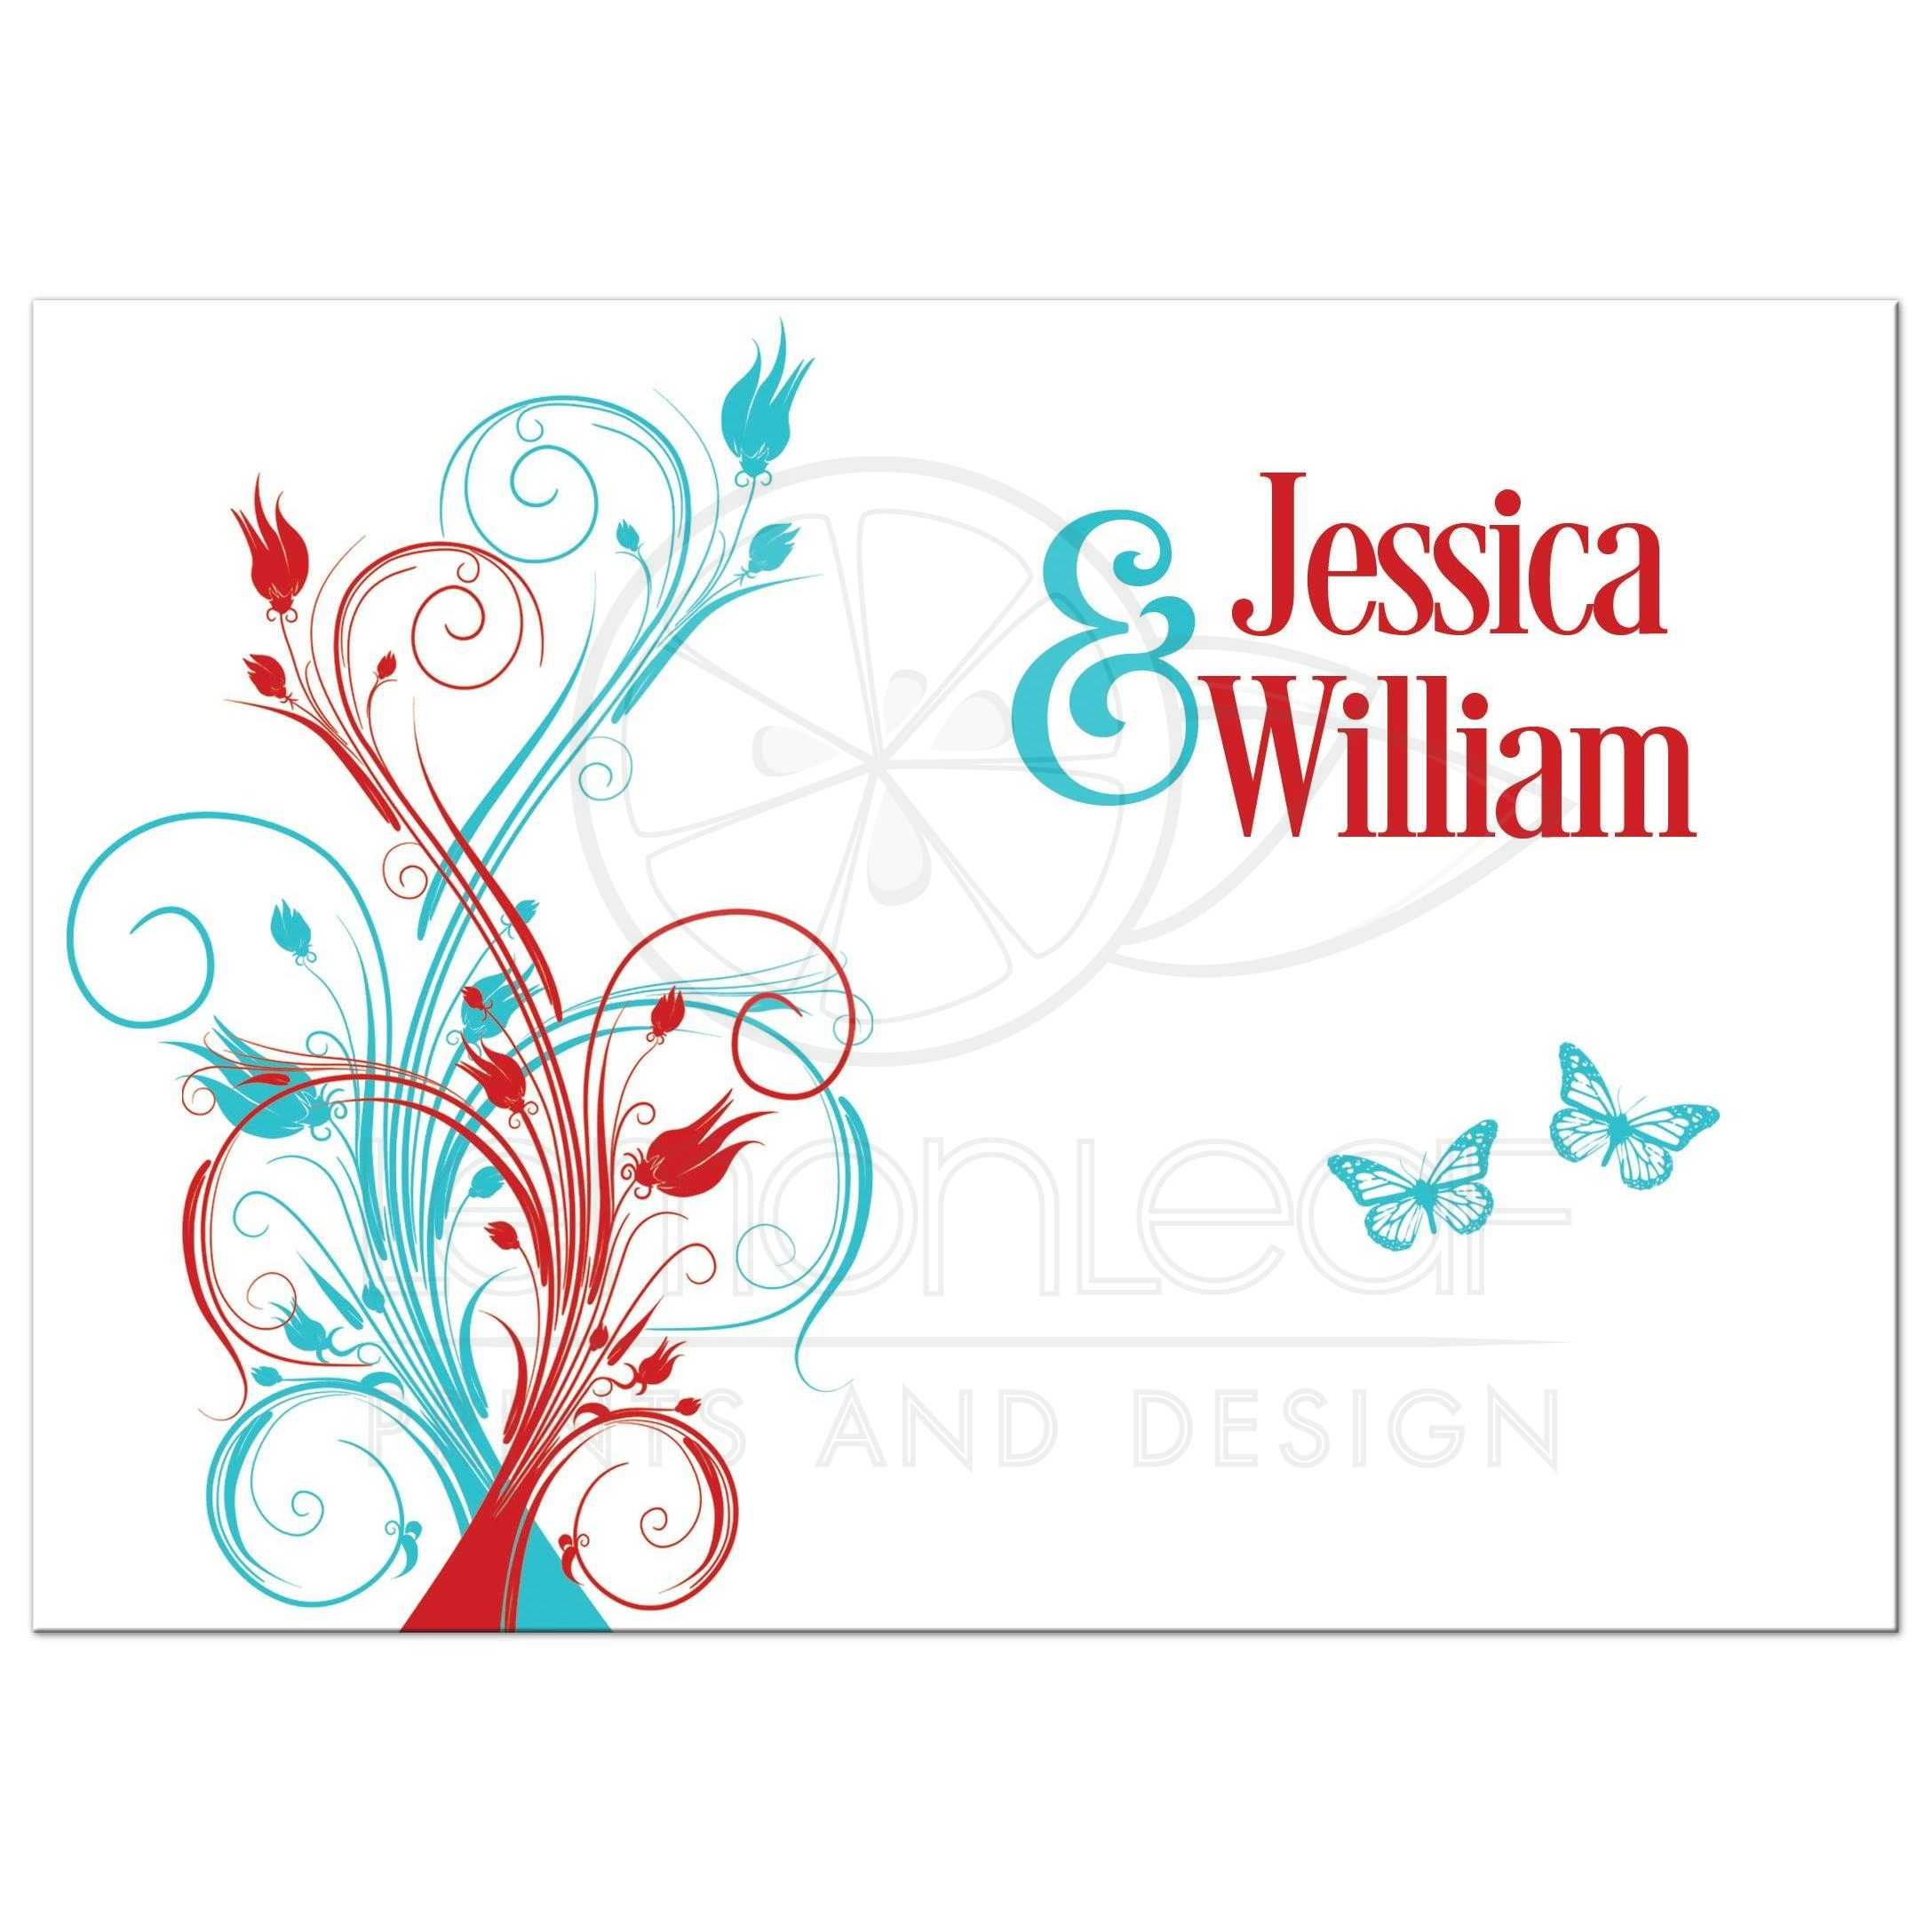 Turquoise And Red Wedding Ideas: Turquoise, Red, White Floral, Butterflies